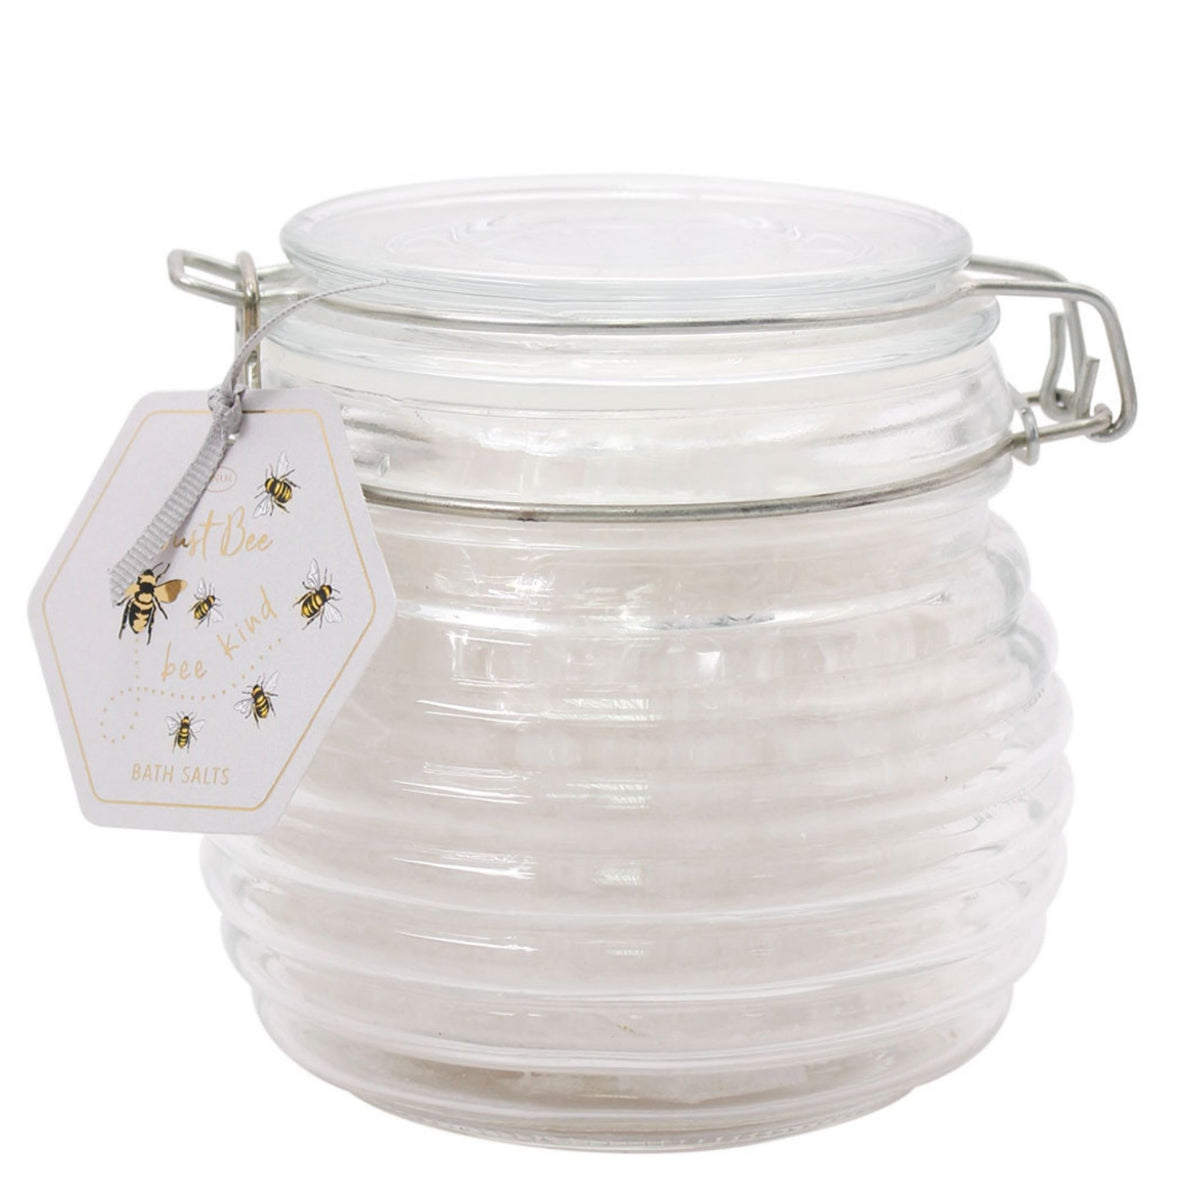 Just Bee Bath Salts (700g Honeypot Jar)